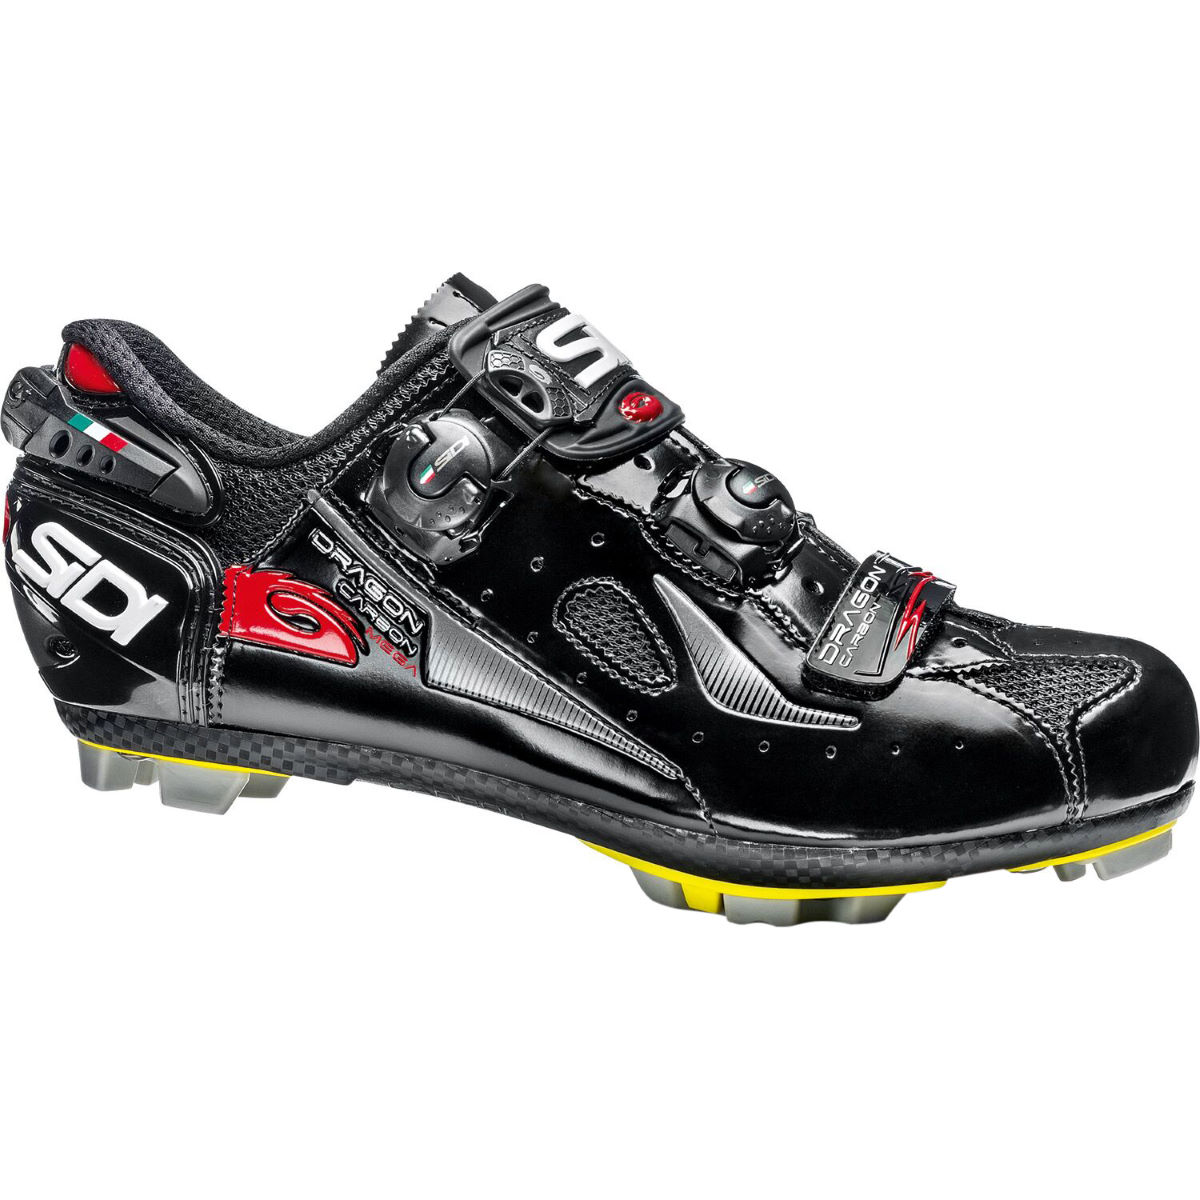 Chaussures VTT Sidi Dragon 4 SRS (carbone, coupe Mega/large) - 40